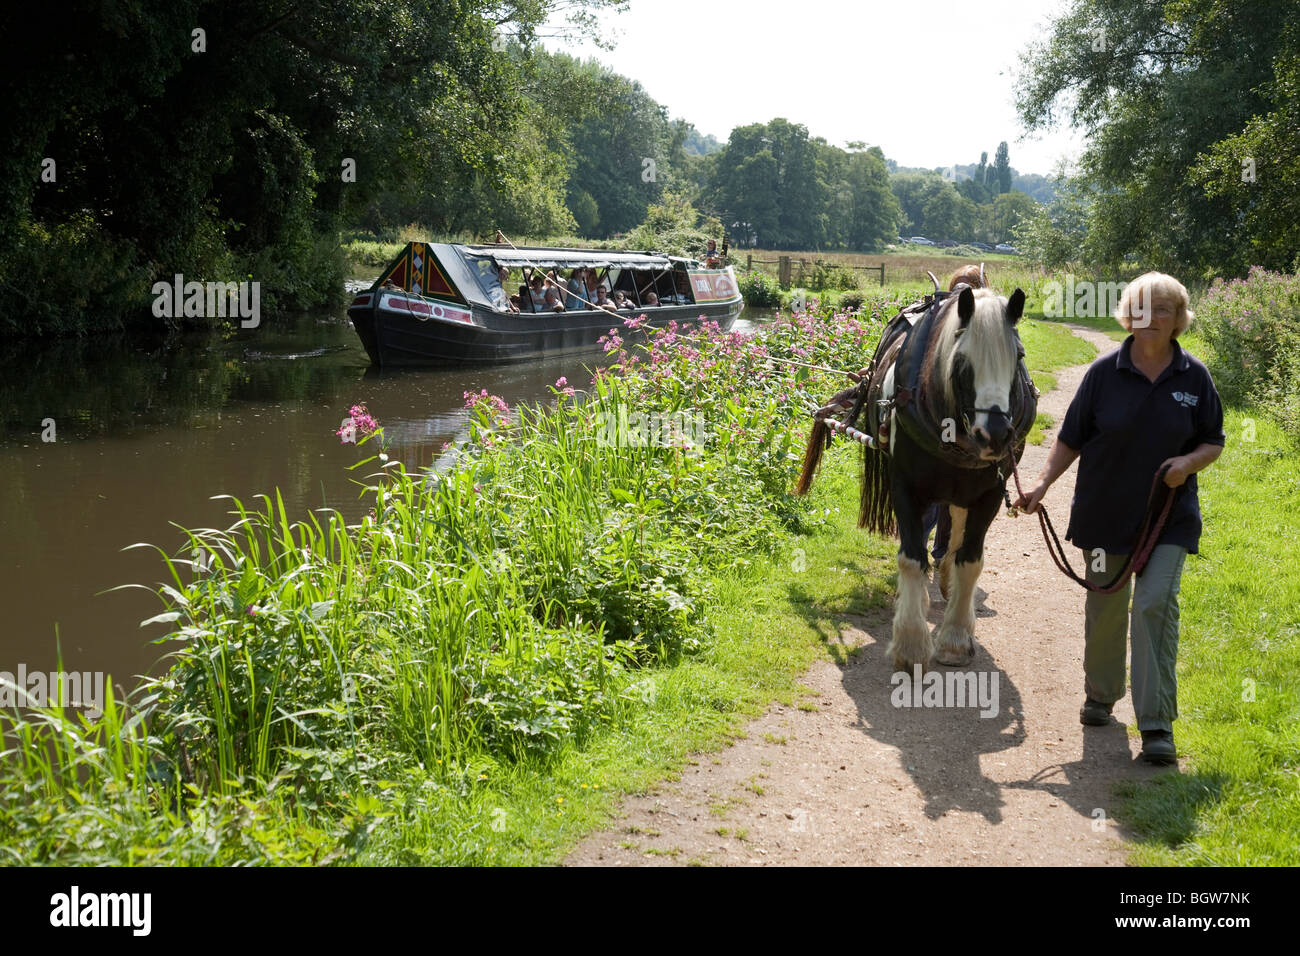 A Welsh Cobb horse is led along a towpath at it pulls a barge on the river Wey in Surrey, England, UK. - Stock Image